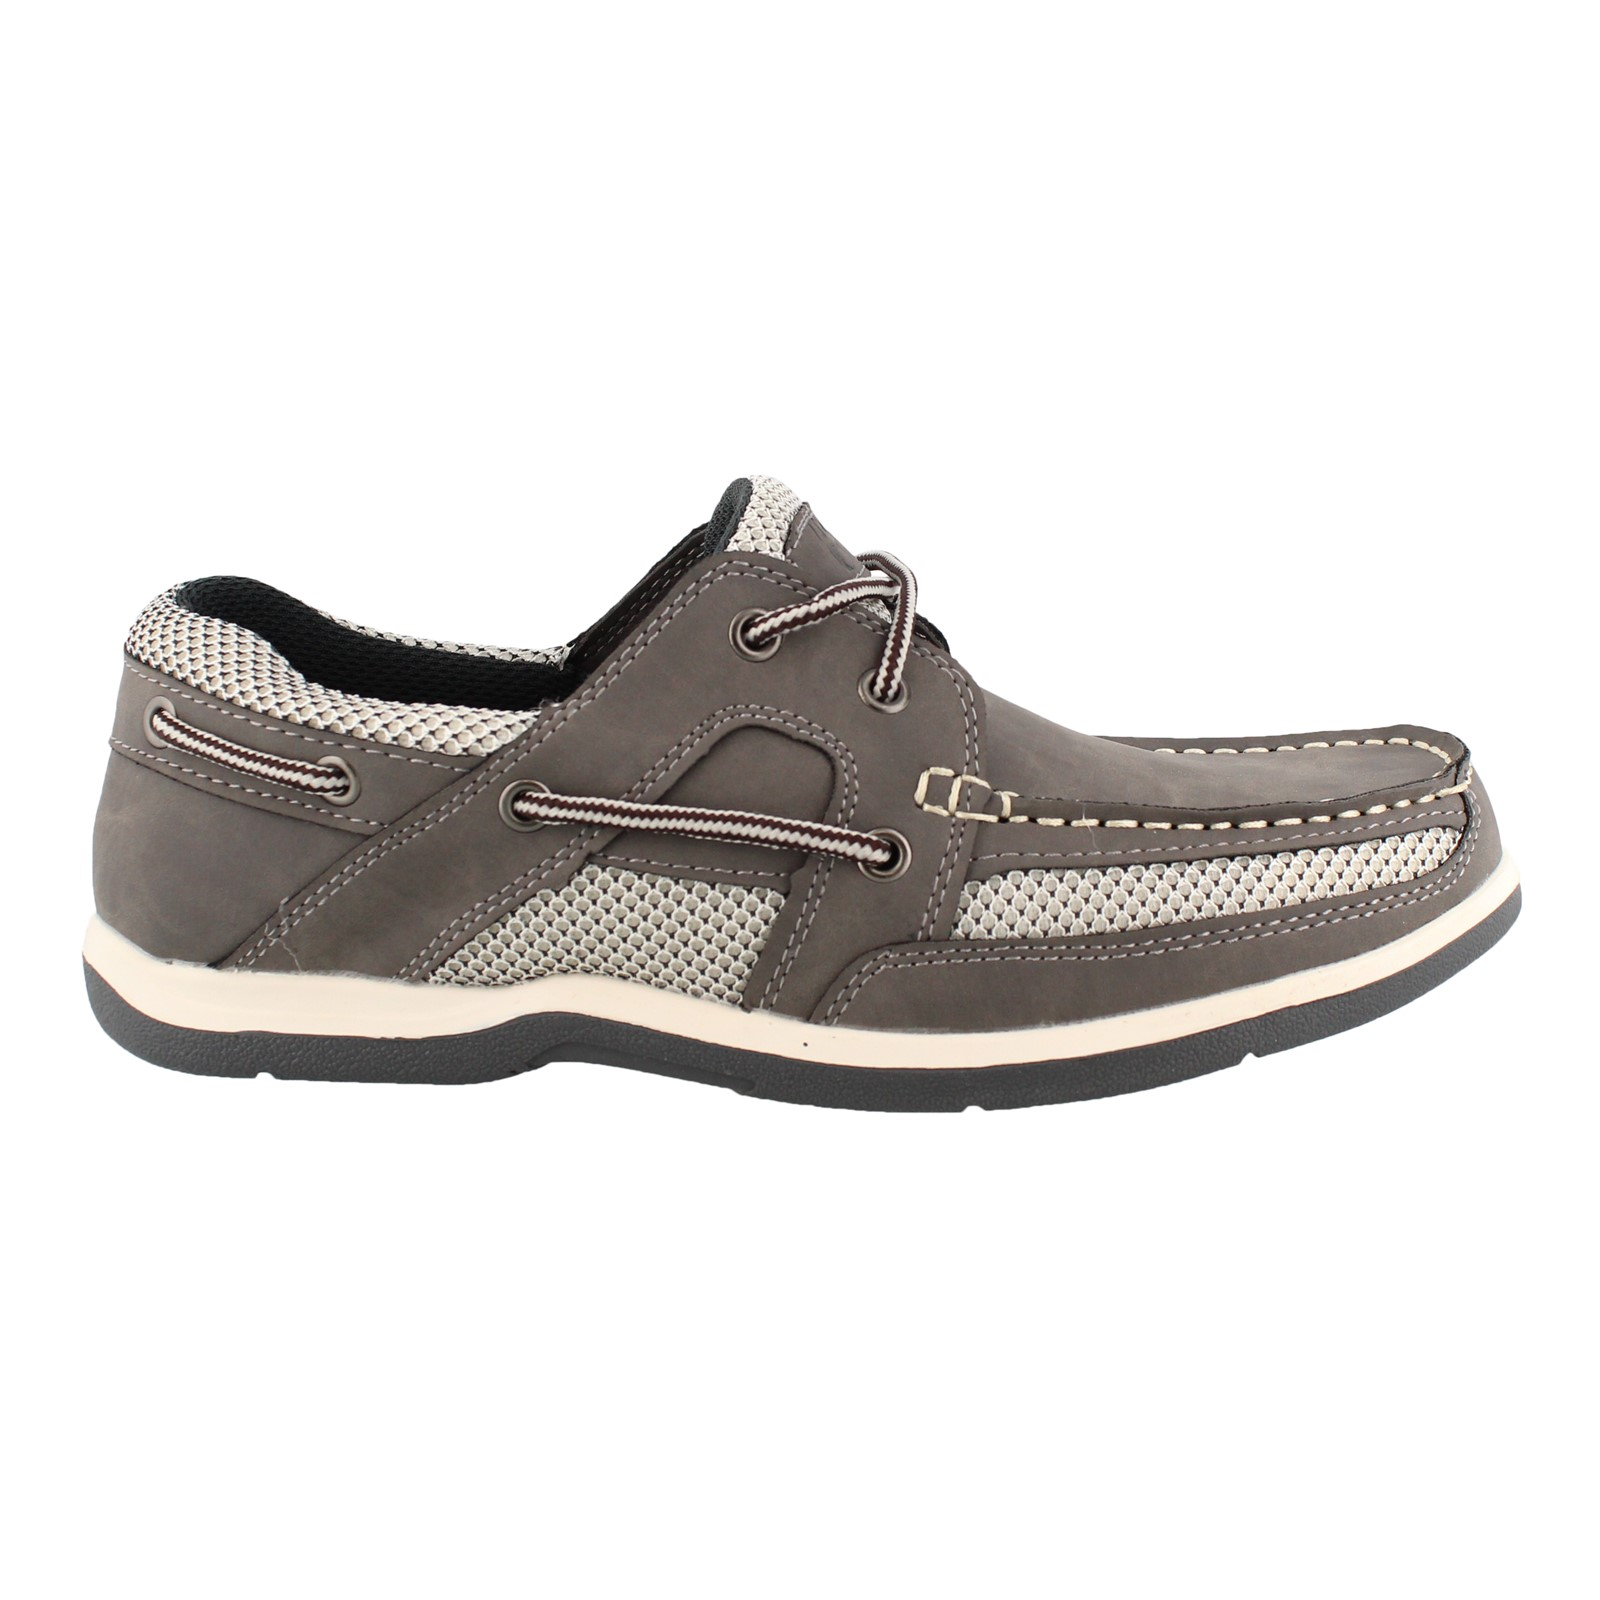 Men's Island Surf Company, Mast Boat Shoes Wide Width